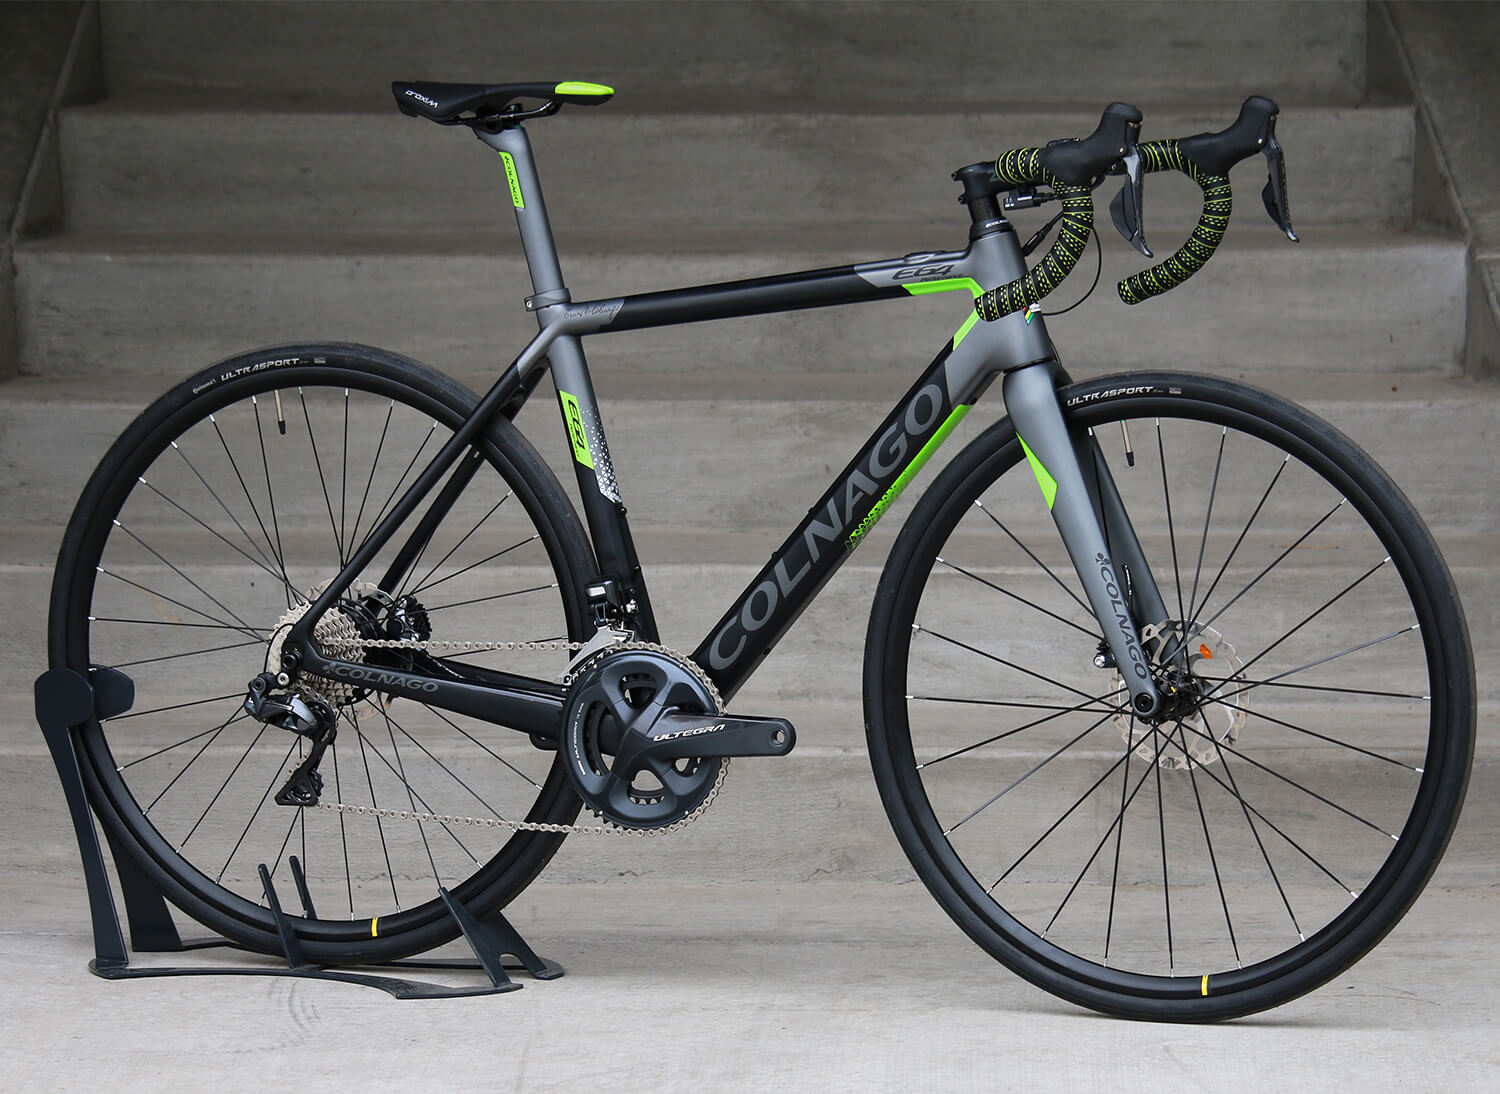 Colnago E64 Performance - Contender Bicycles